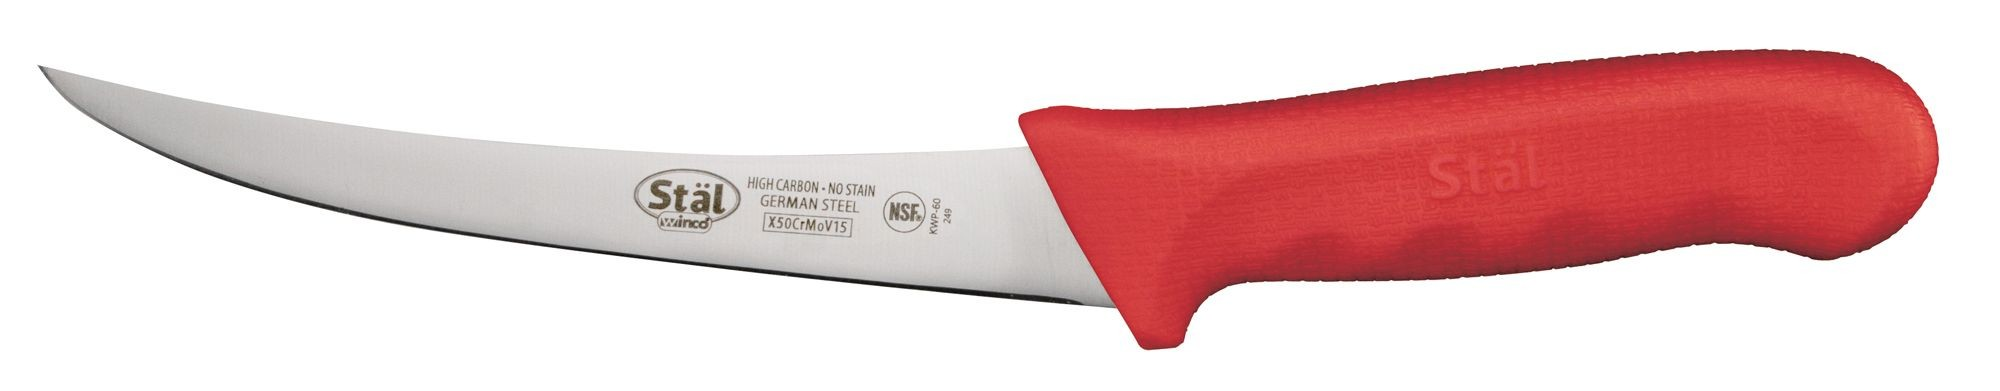 "Winco KWP-60R Curved 6"" Boning Knife with Red Handle"